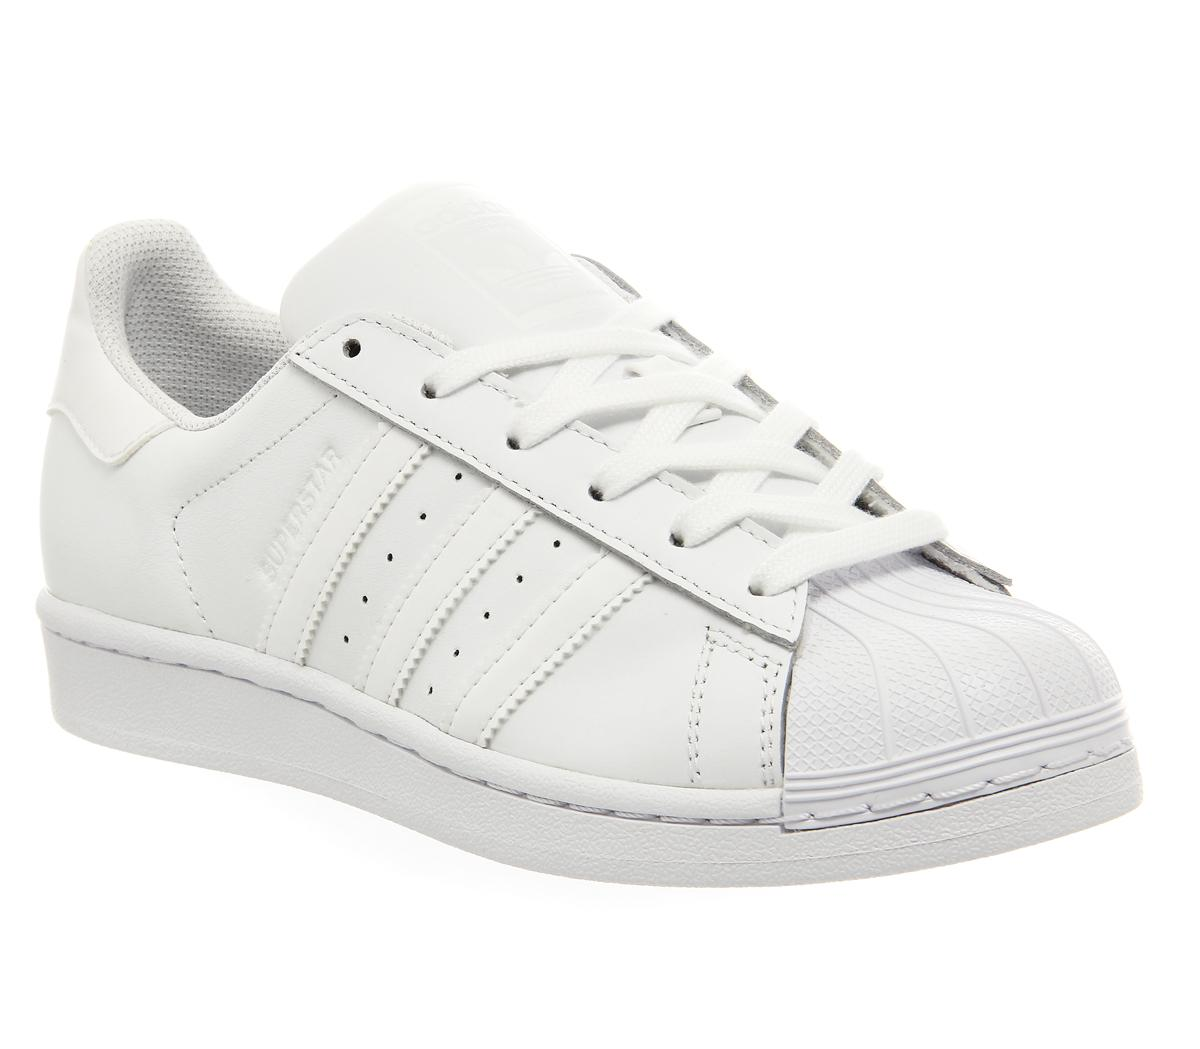 Adidas Superstar adidas Superstar 1 White Mono Foundation - Unisex Sports